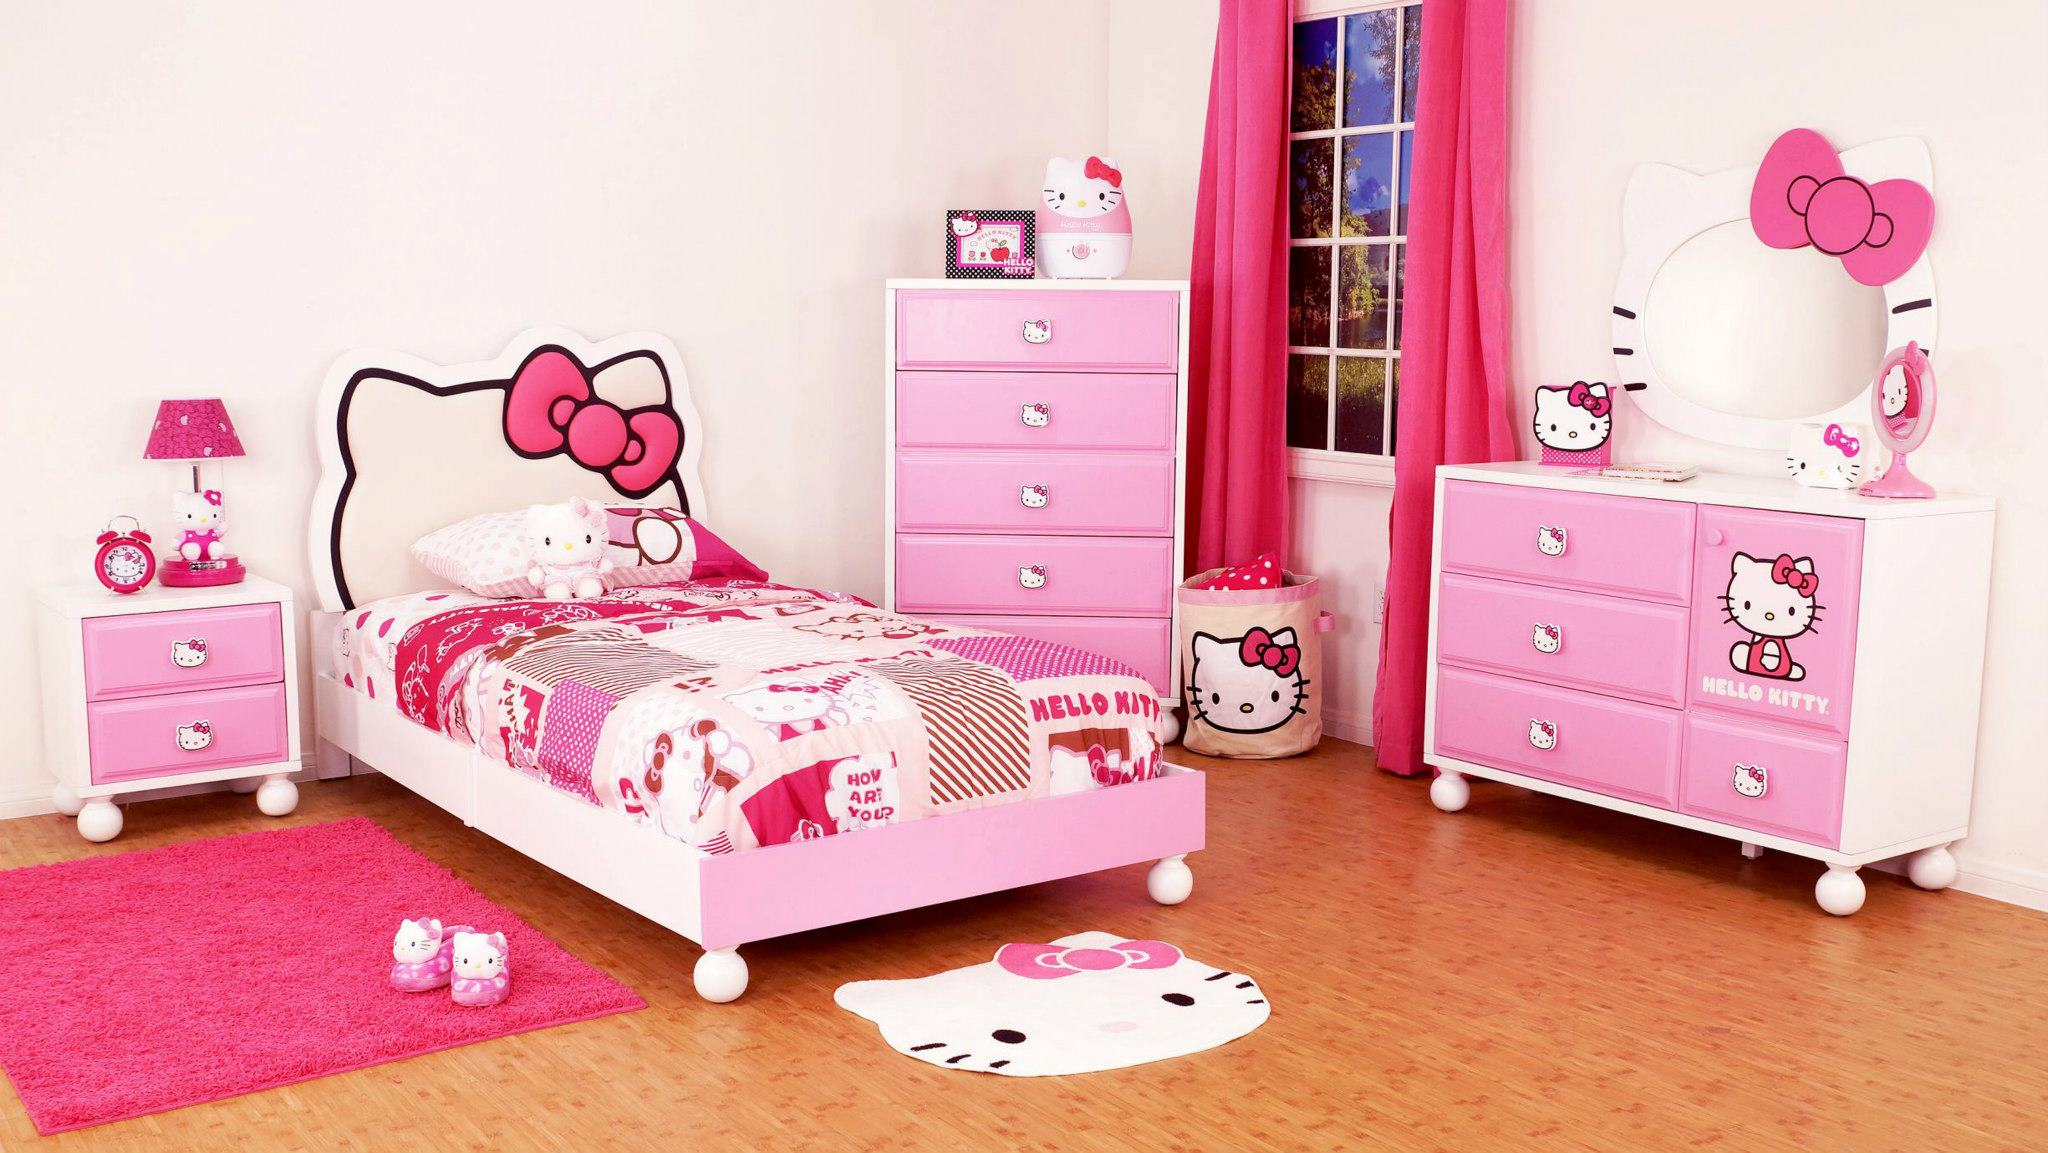 Simple Wallpaper Hello Kitty Shelf - Hello-Kitty-Theme-kids-bedroom-interior-design  Trends_882586.jpg